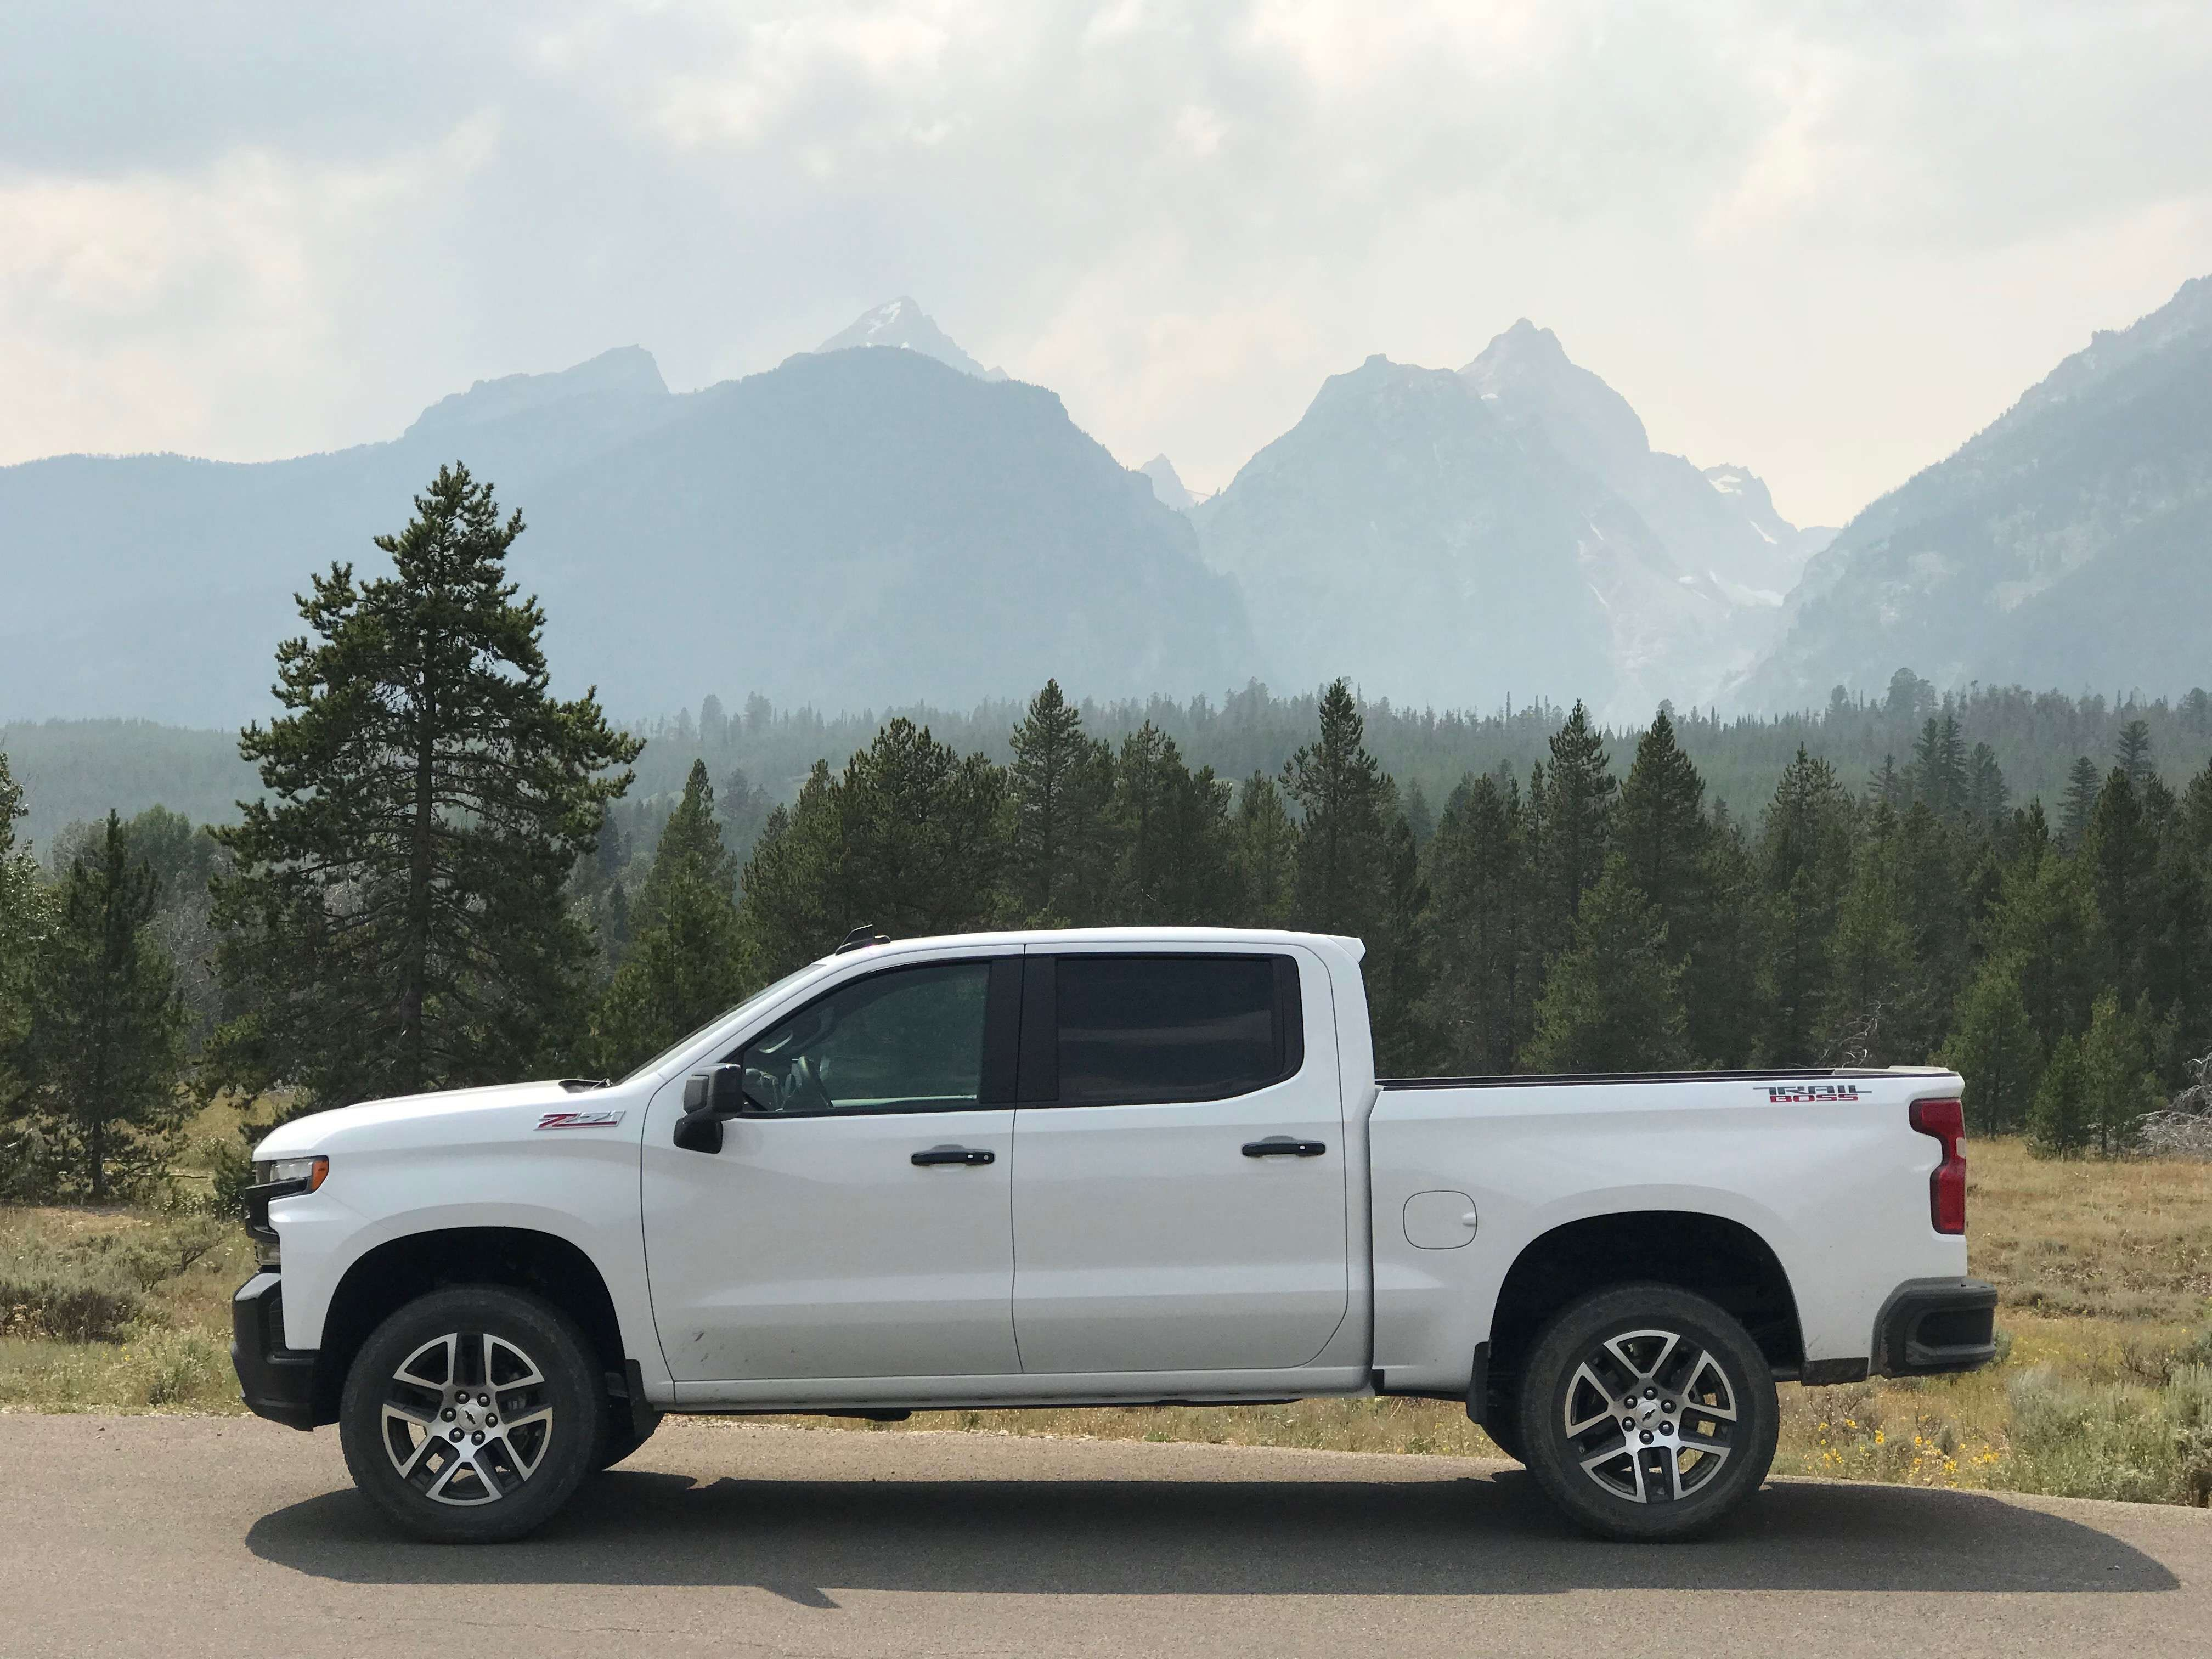 2019 Chevrolet Silverado First Drive Changes Big And Small Because That S What The People Want Chevrolet Silverado Chevrolet Silverado